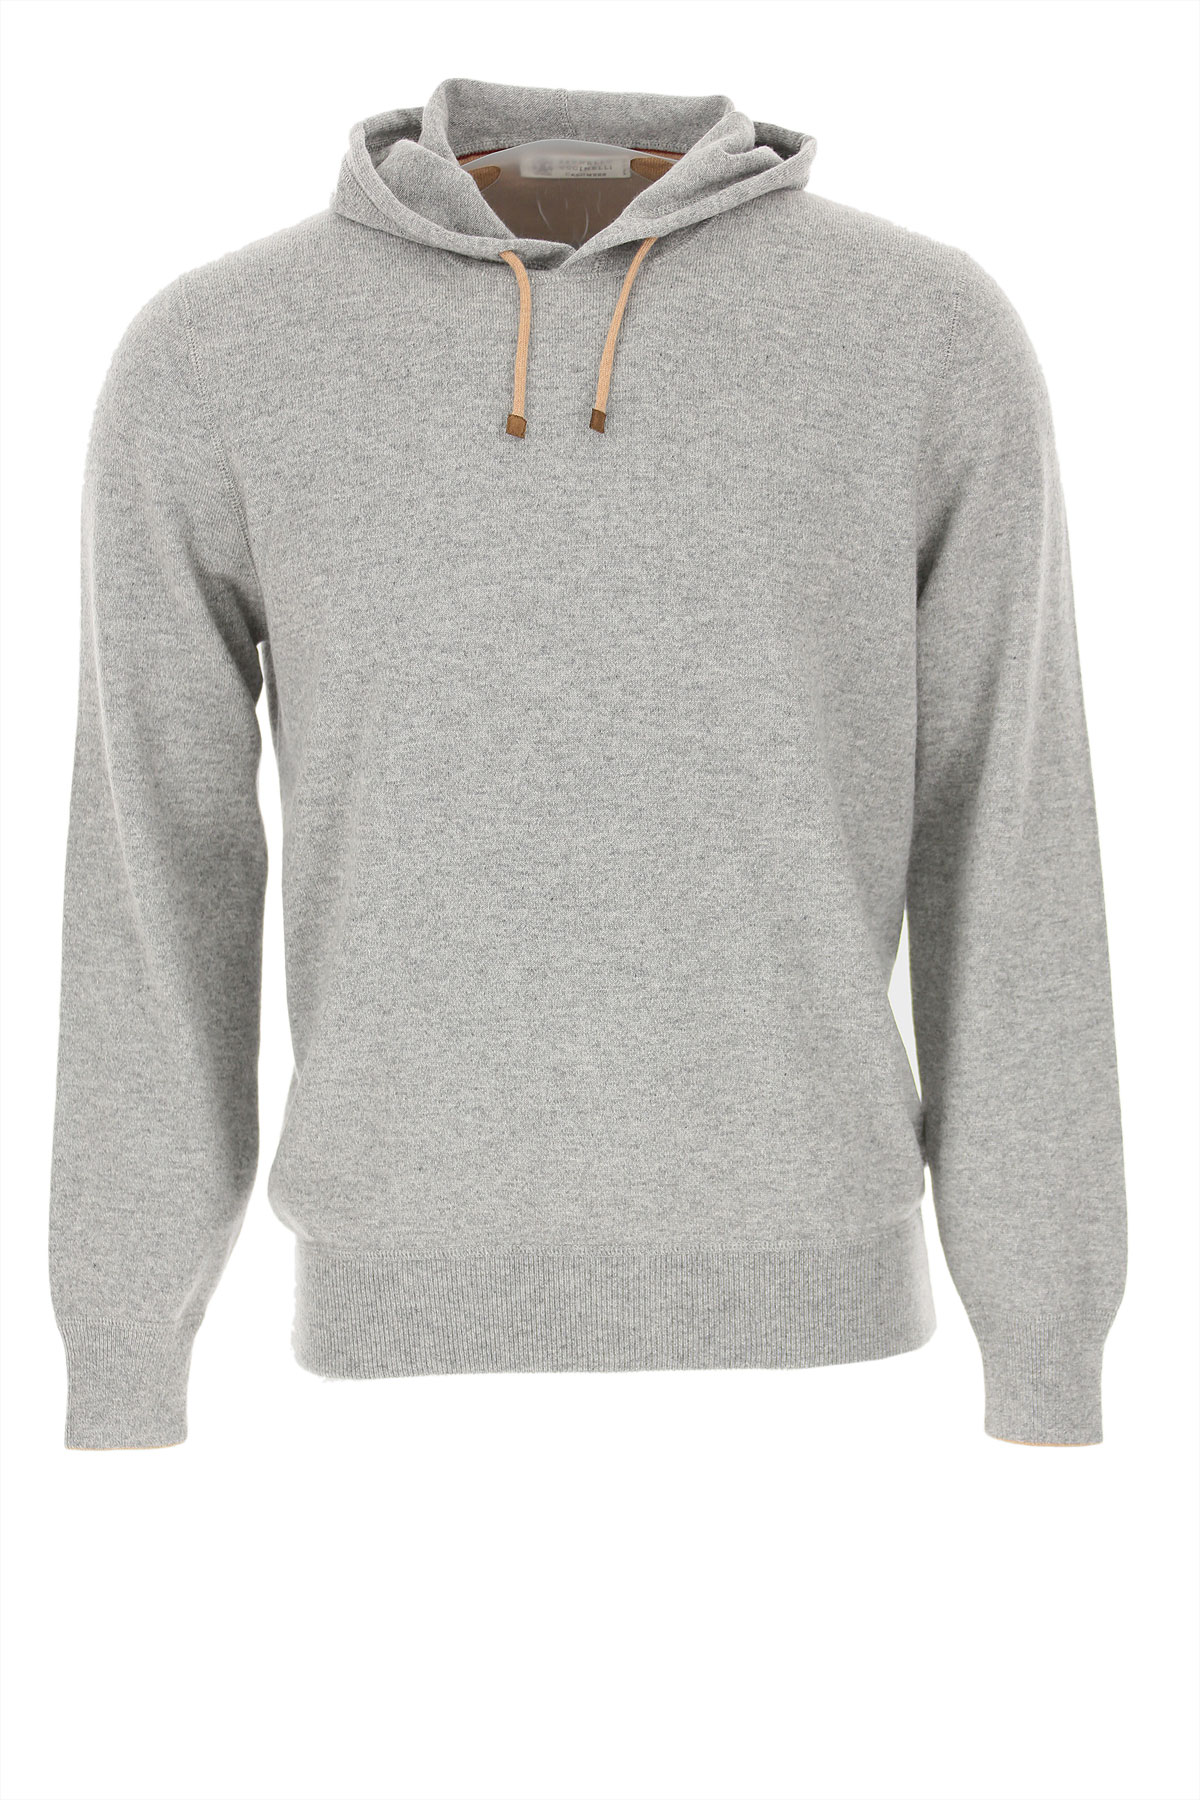 Brunello Cucinelli Sweater for Men Jumper, Grey, Cashmere, 2019, M XL